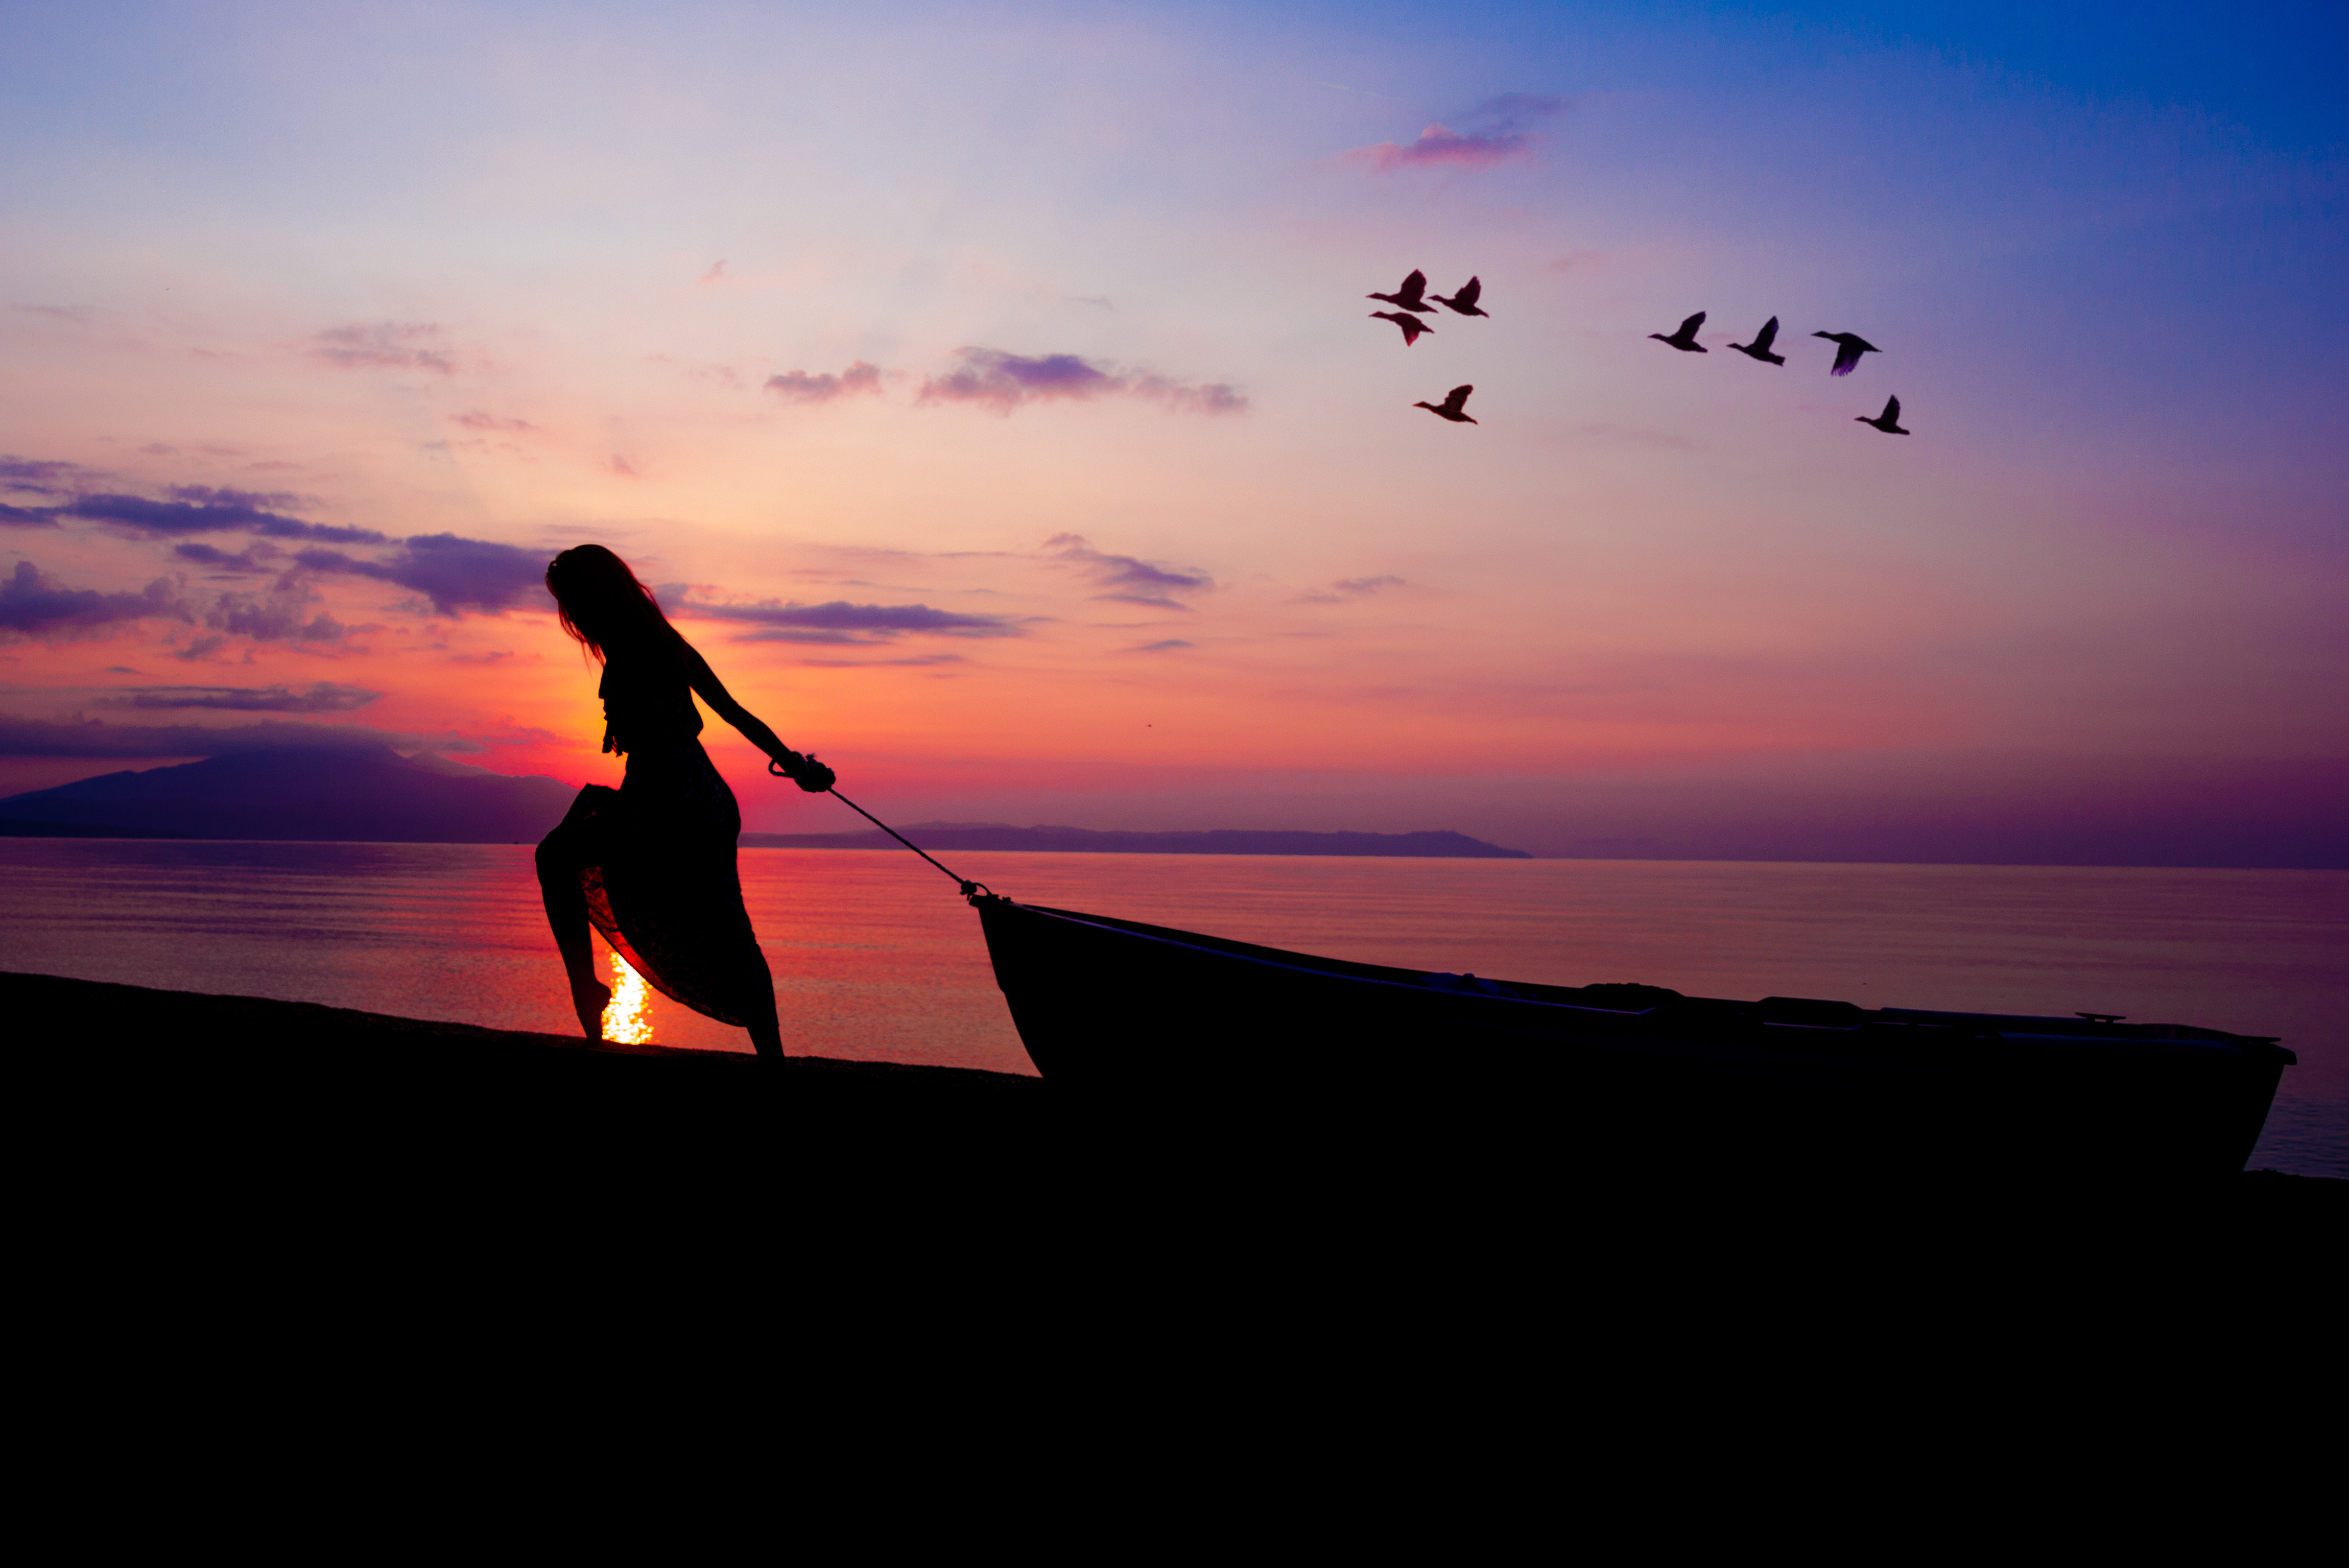 Lonely Cute Girl Wallpaper Women Towing Boat Beach Sunset Silhouette Hd Nature 4k